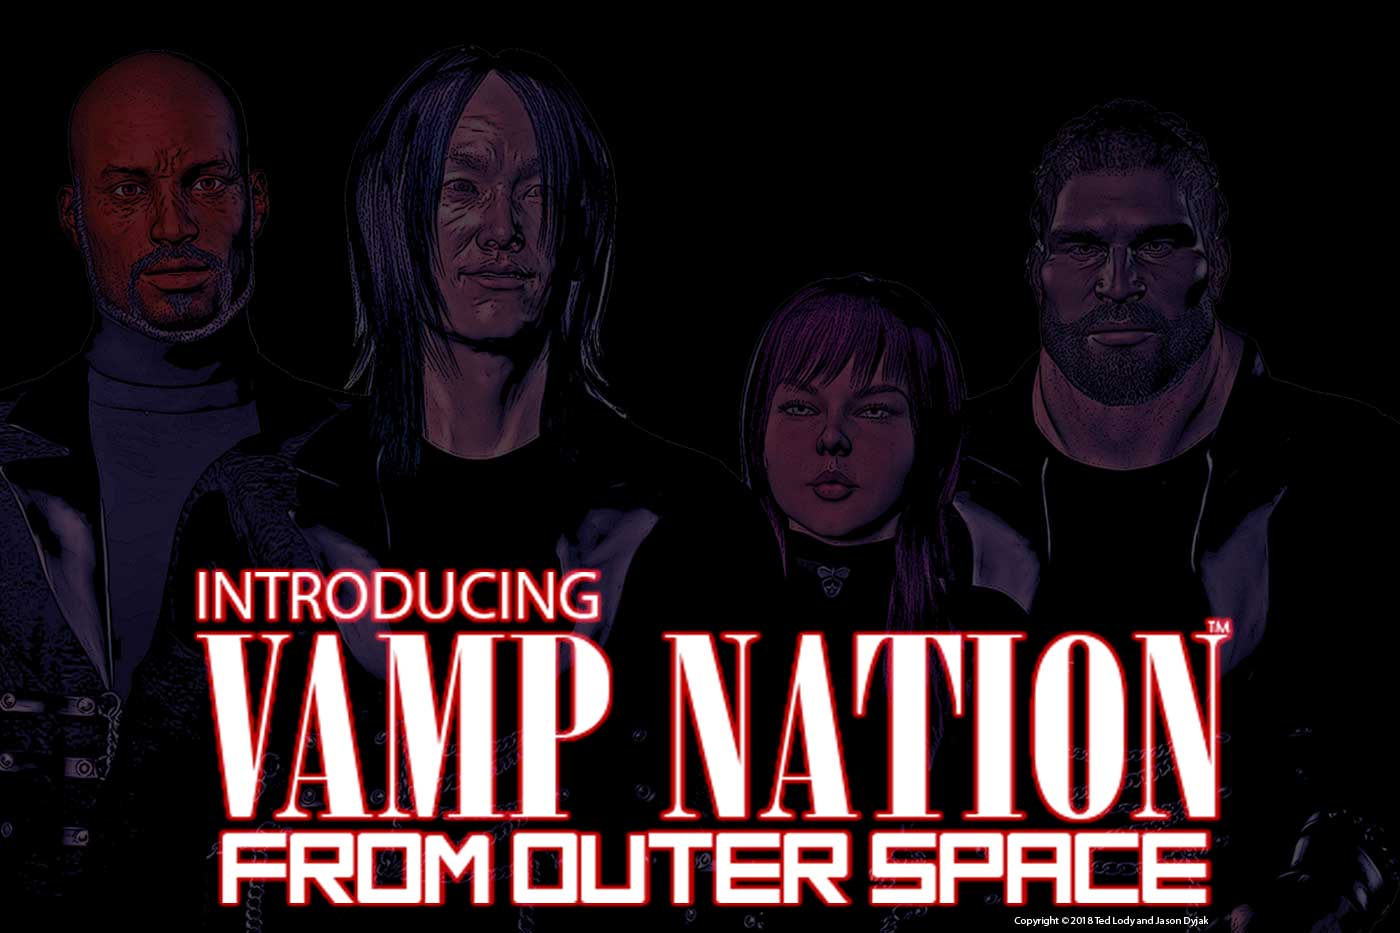 Vamp Nation from Outer Space Graphic Novel